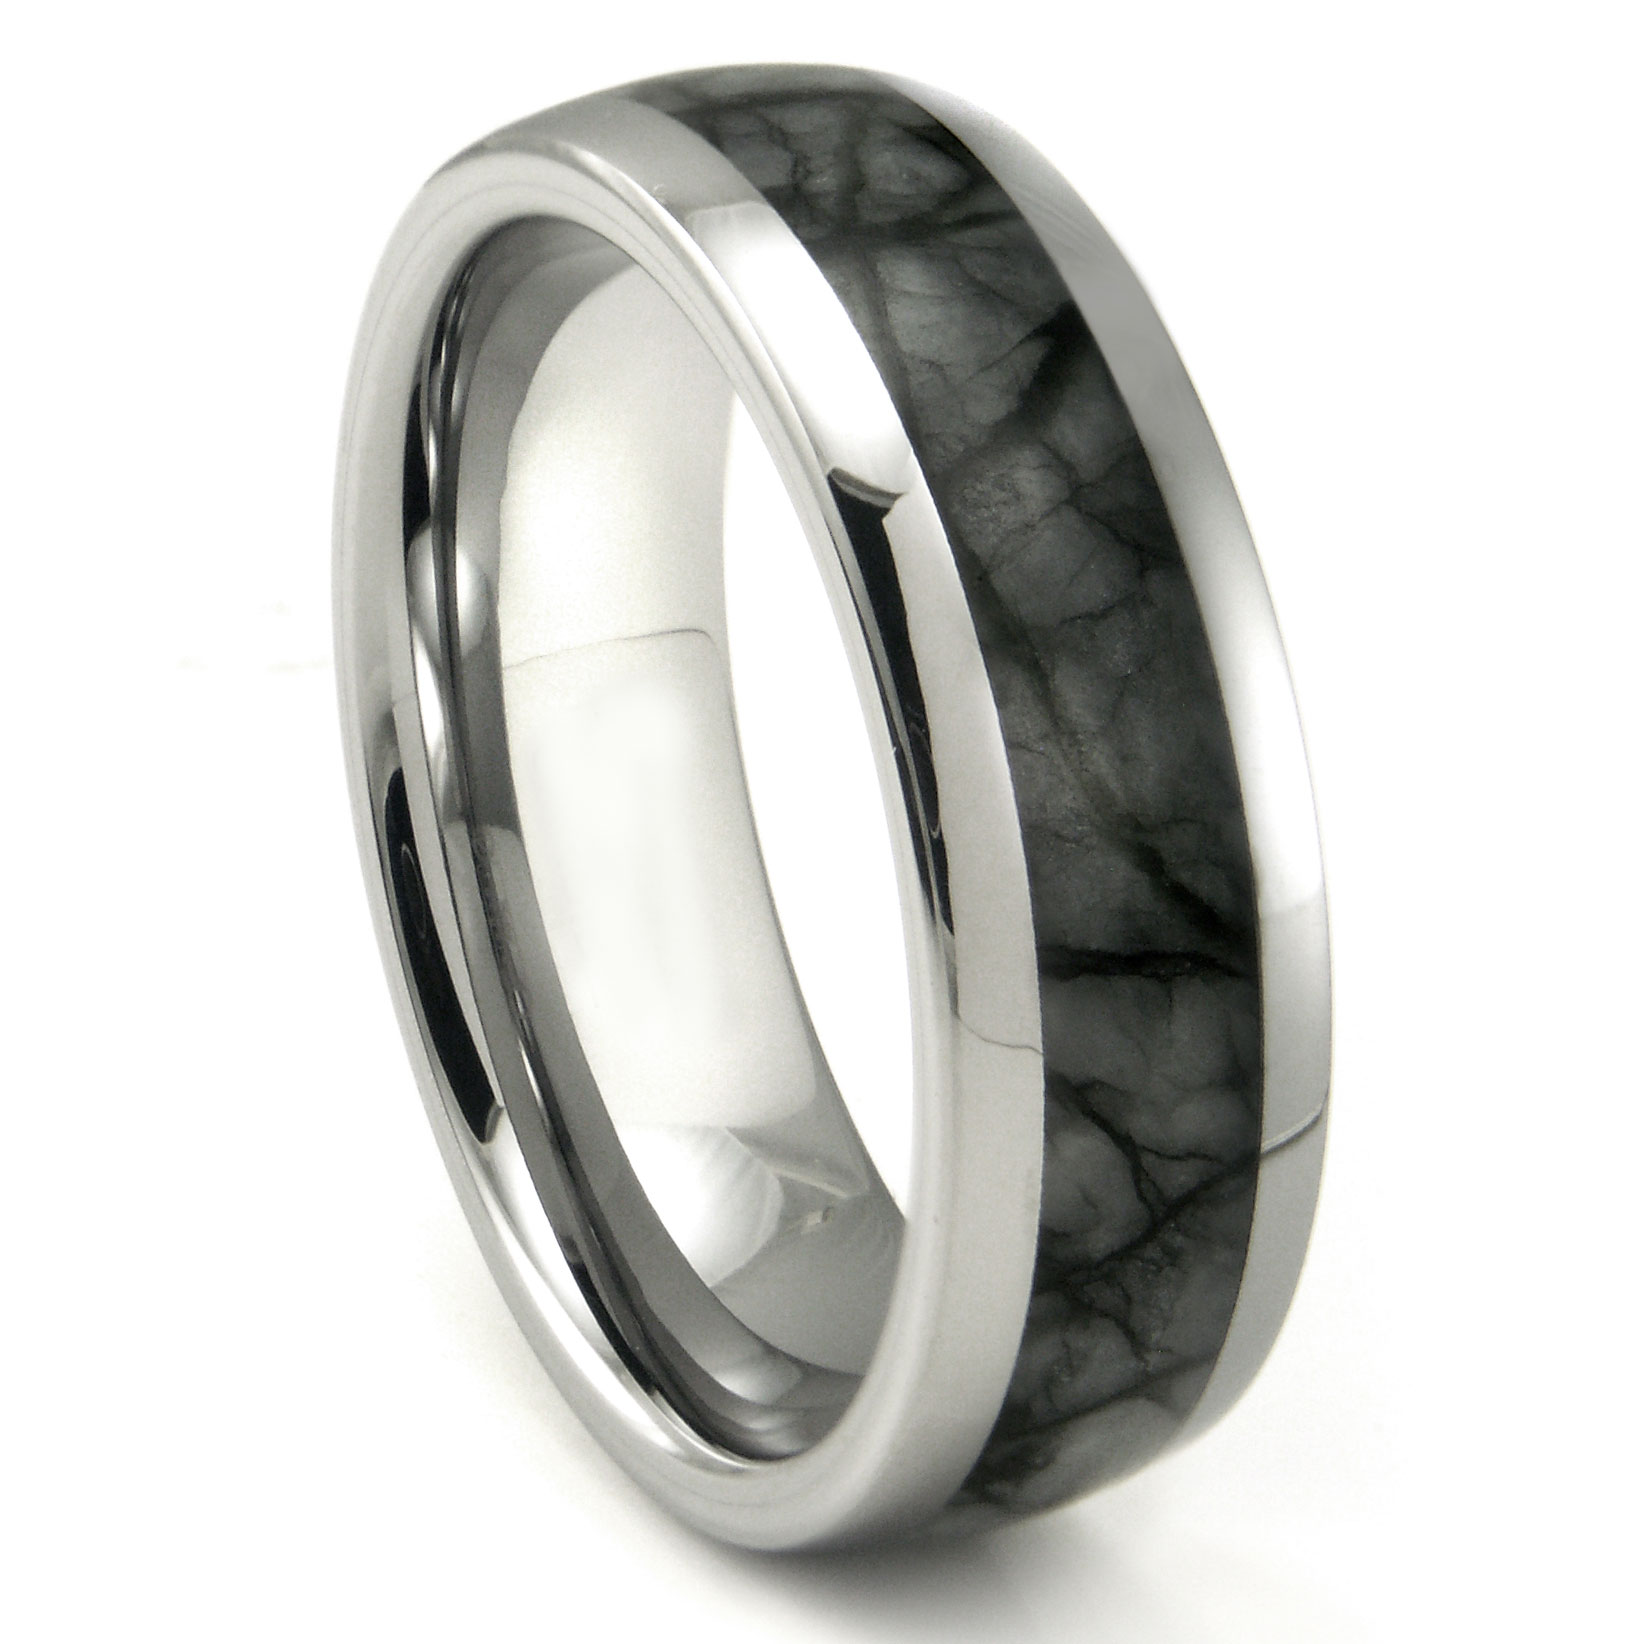 black amazon sapphire dp triton rings jewelry tungsten band s wedding gray men ca